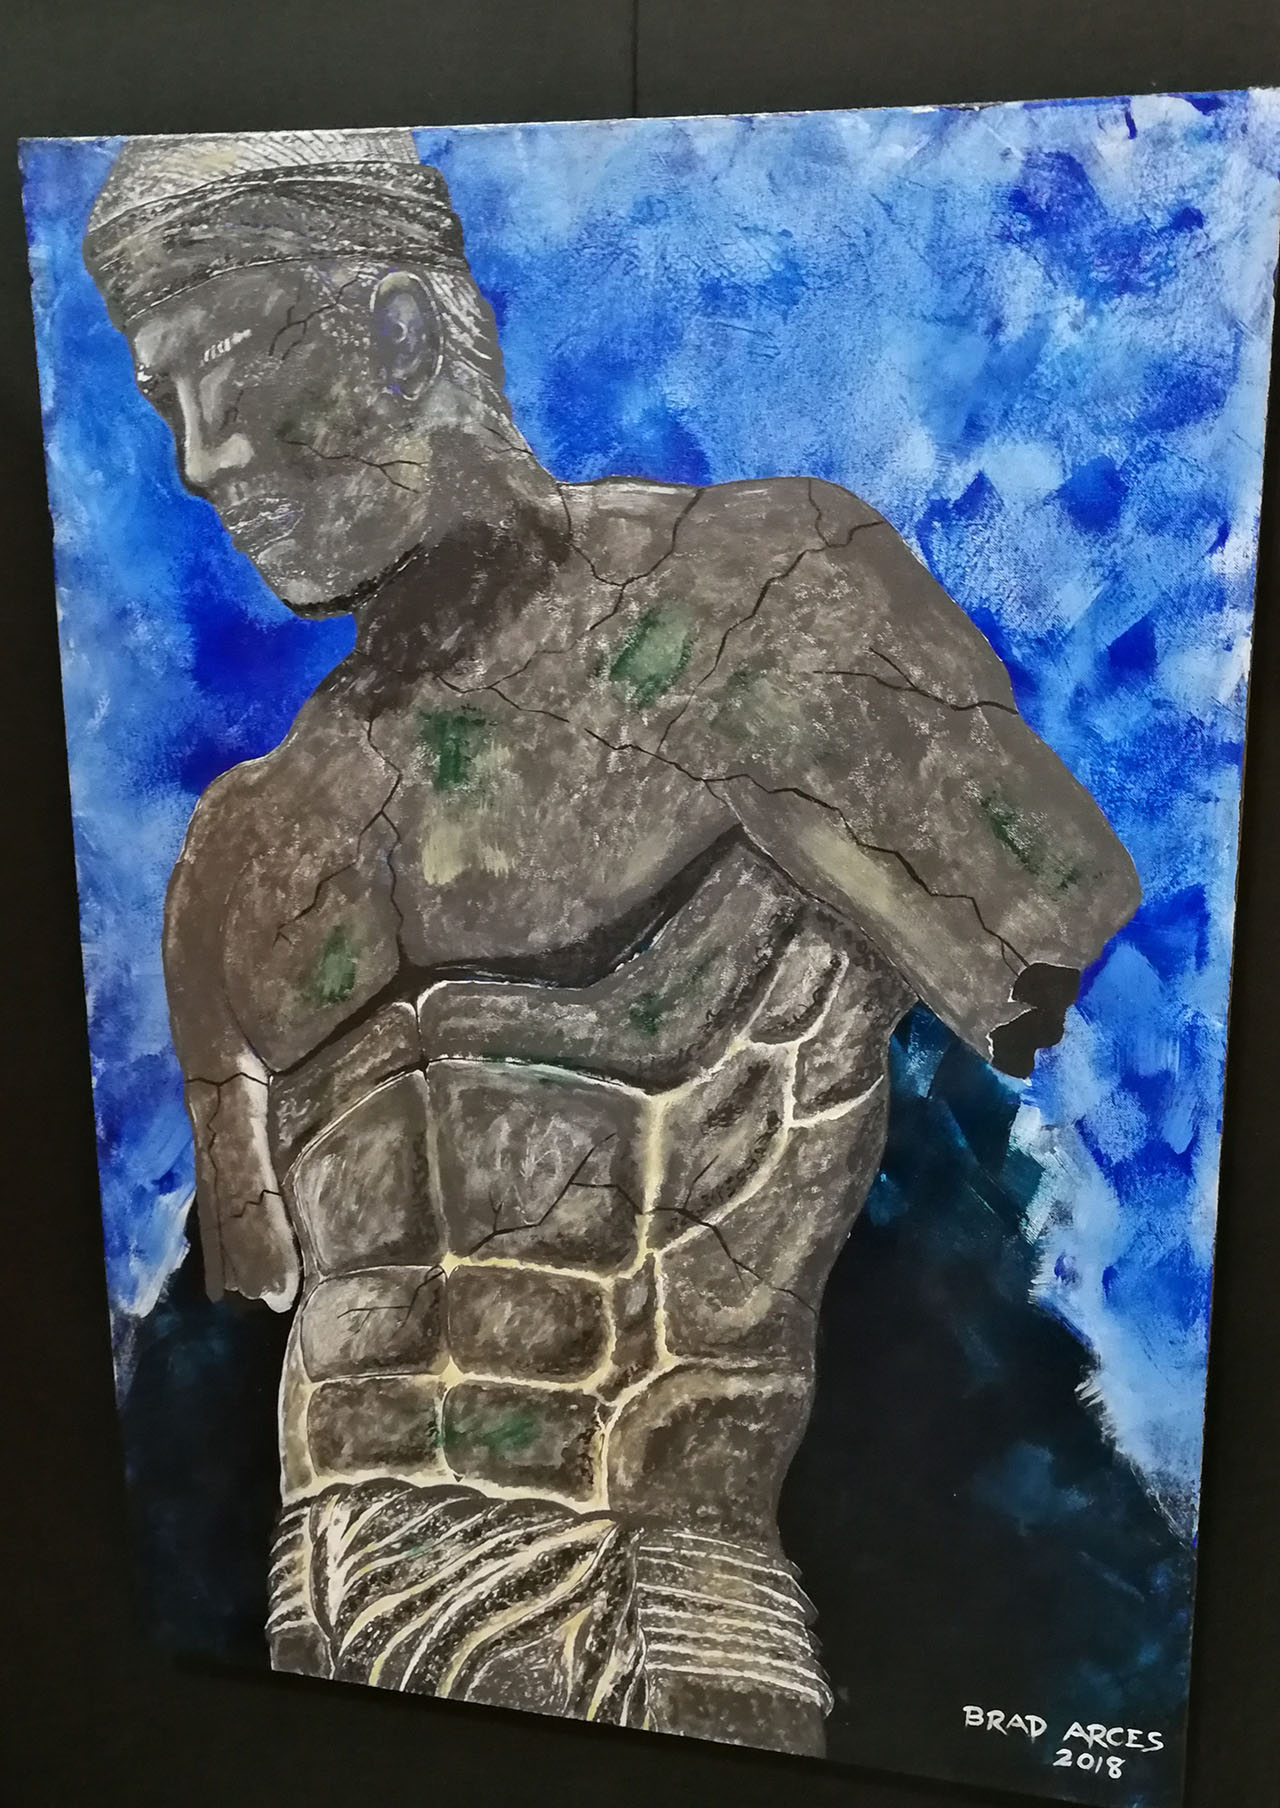 UNNAMED HEROES. Brad Boiser Arces honors heroes who have not been recognized in history for their valor and bravery in the battles they fought through his painting. Photo by Angelo Lorenzo